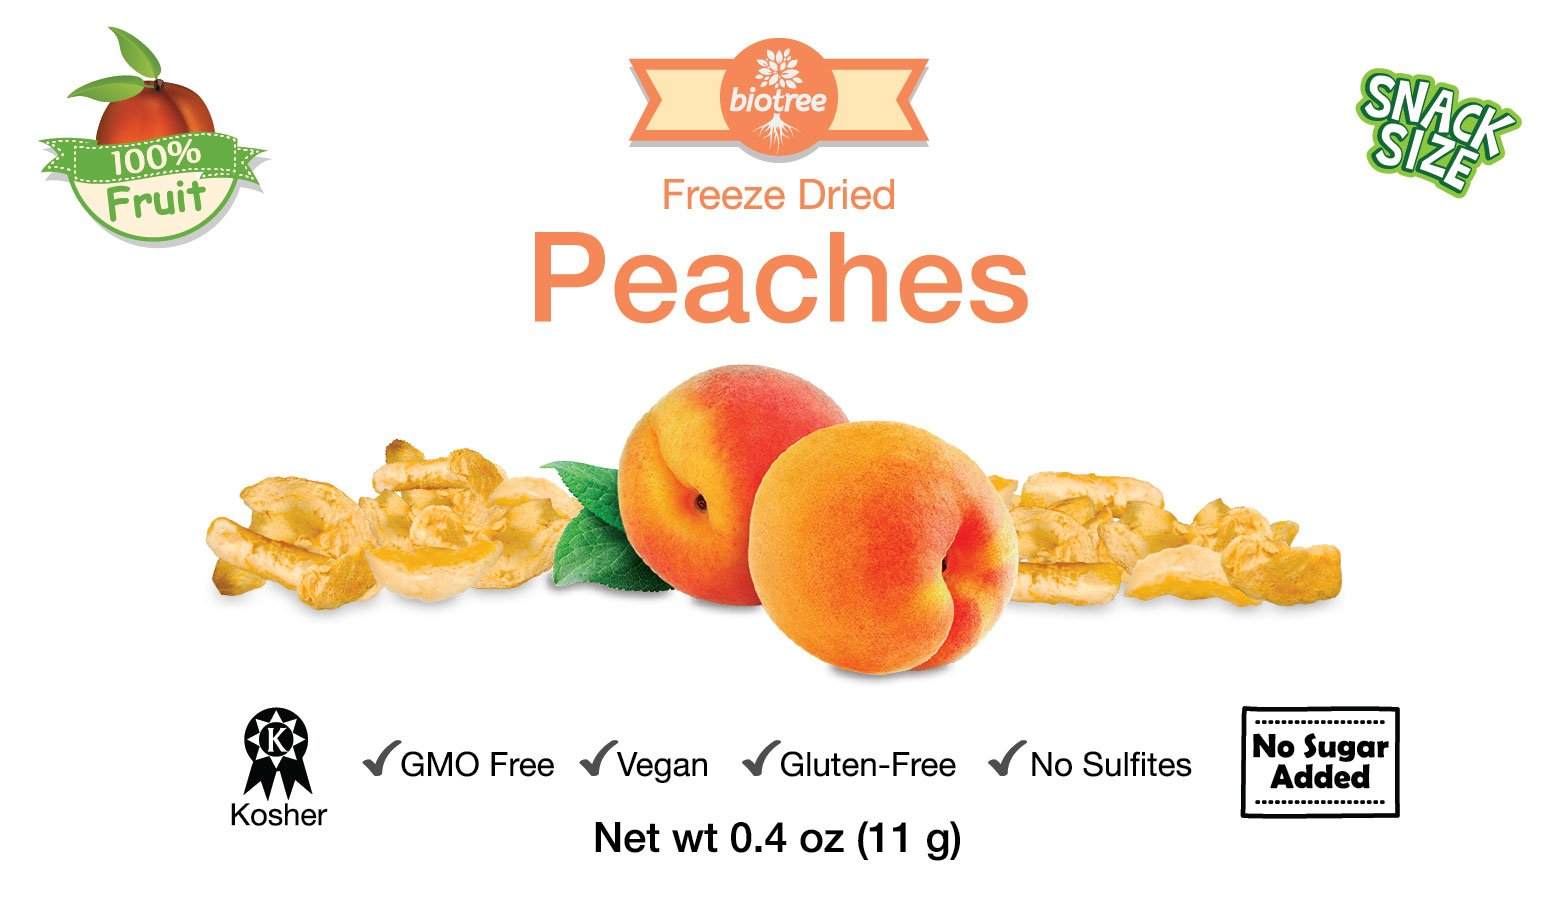 6 Pack of Snack Size Delicious Peaches - All Natural 100% Freeze Dried Peaches: No Added Sugar or Preservatives, Paleo, Gluten-Free. Healthy Snack for Children & Adults (0.4 Oz)